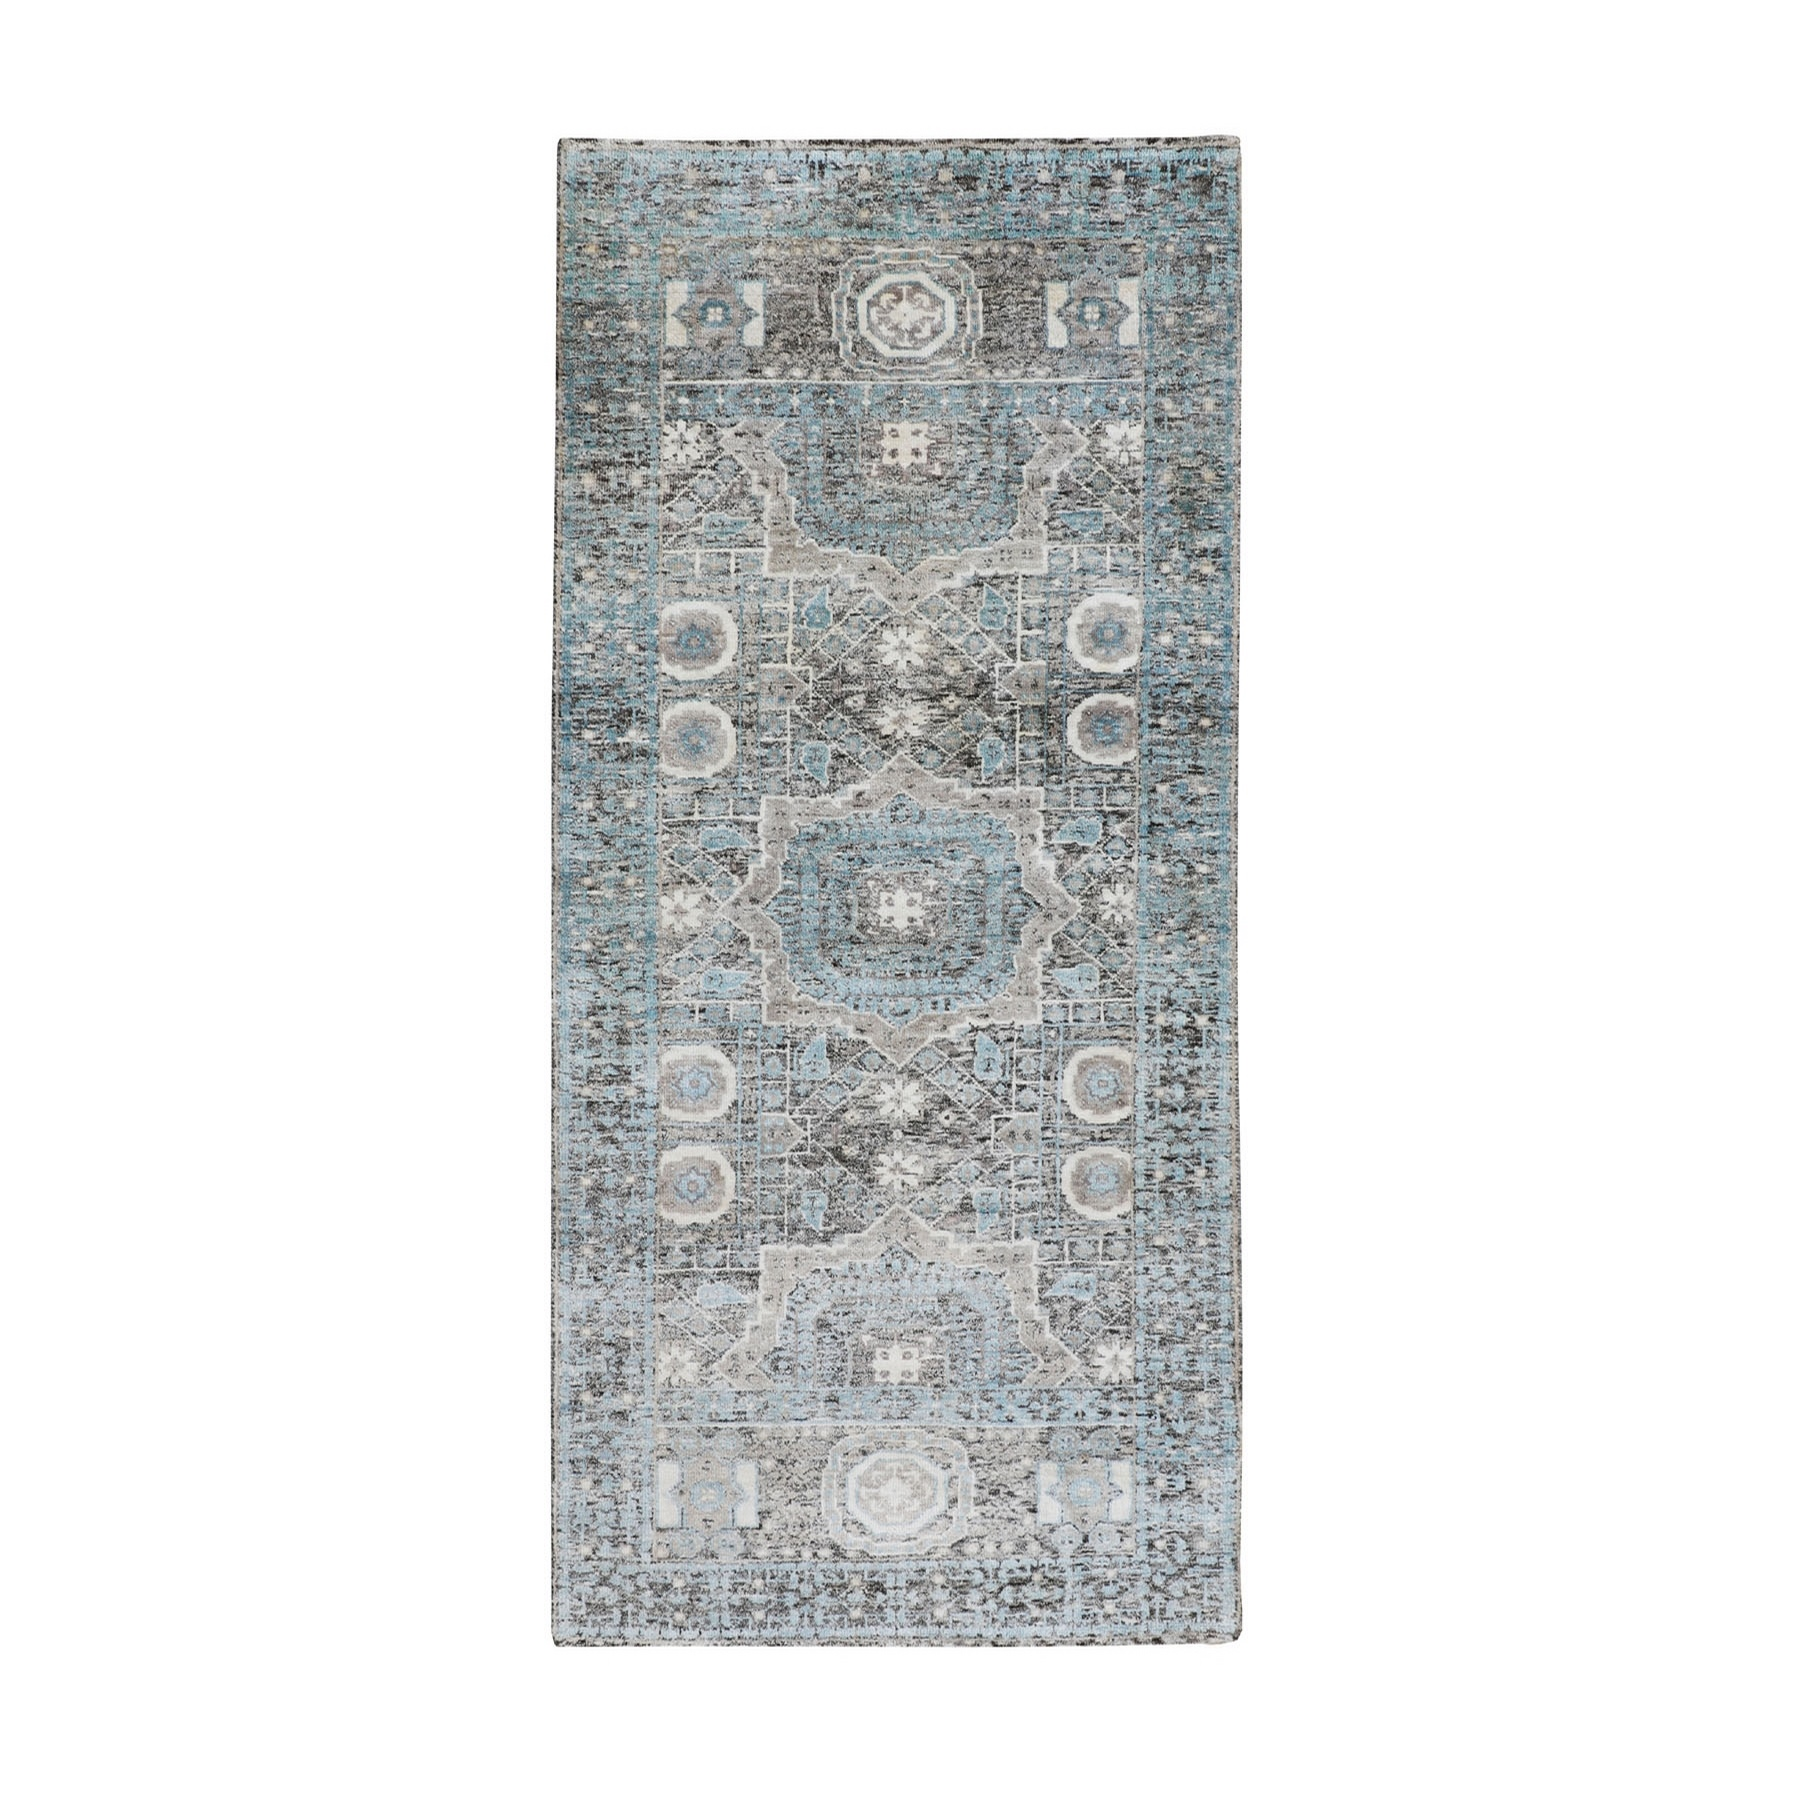 """2'8""""x6'1"""" Silk With Textured Wool Hi-Low Pile Mamluk Design Runner Hand Knotted Oriental Rug"""